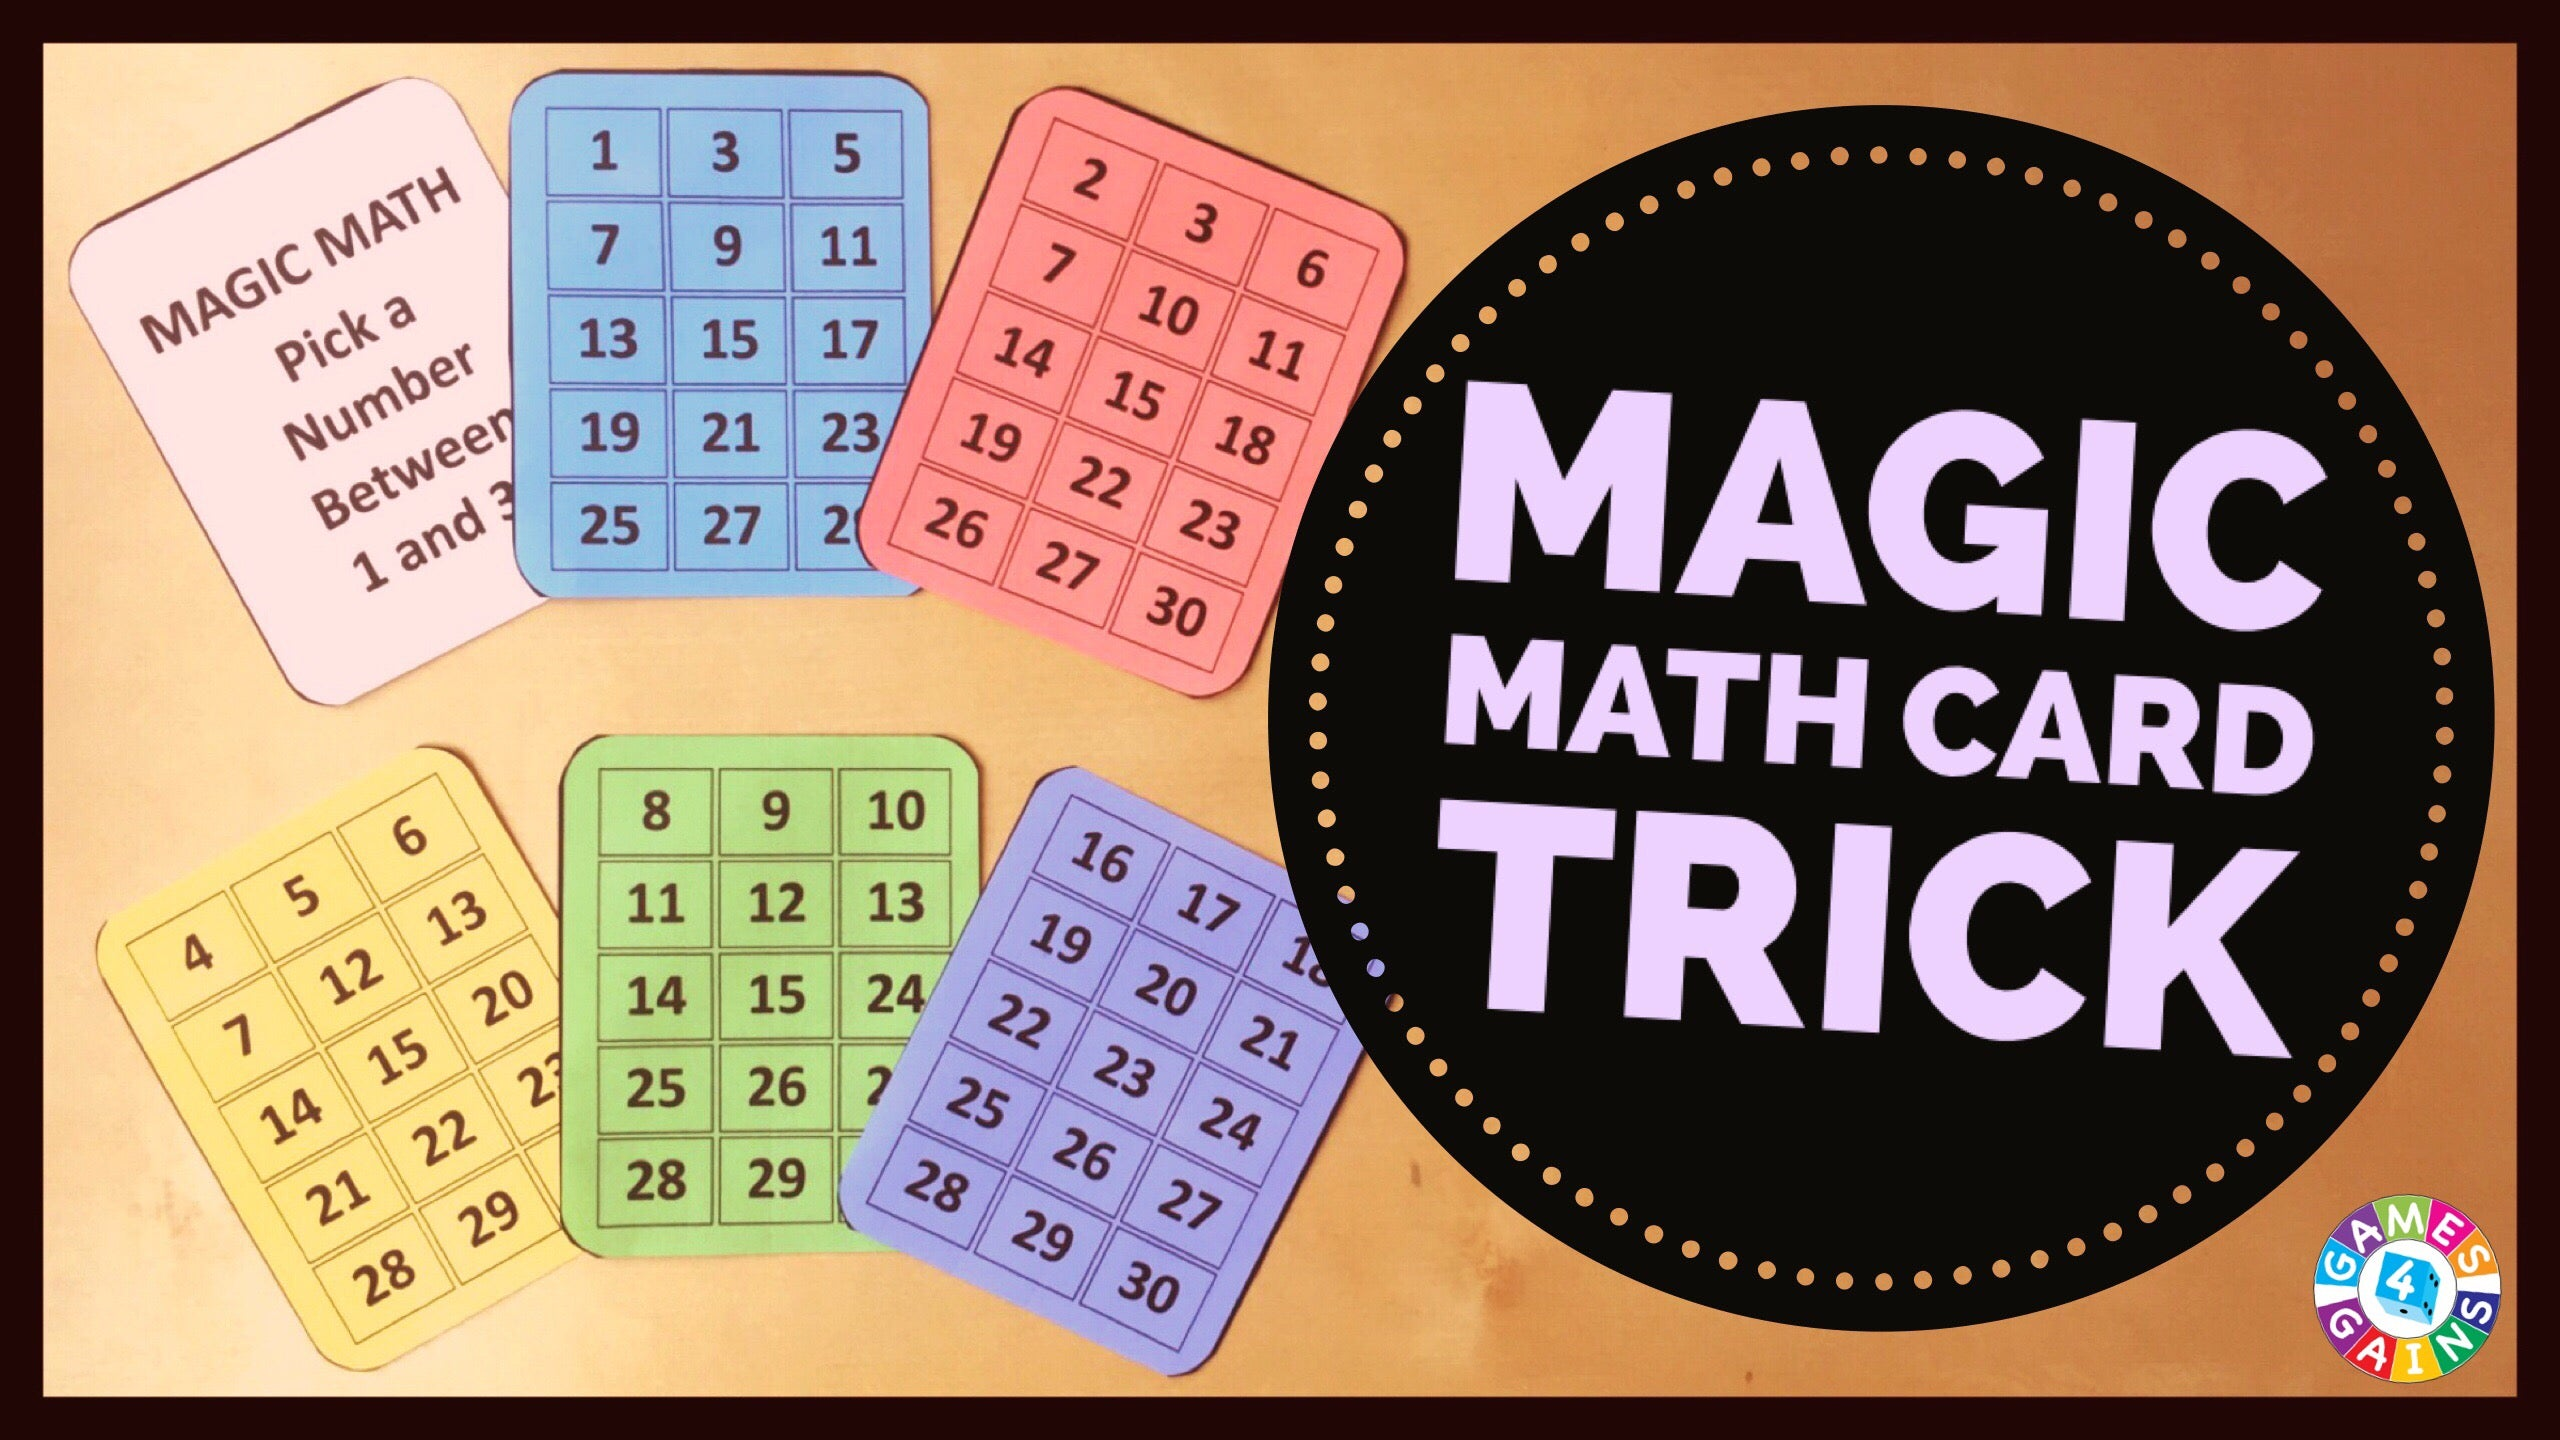 Worksheets Mind-readingnumbertrick — Mathfunfacts amaze your students with this math magic trick games 4 gains